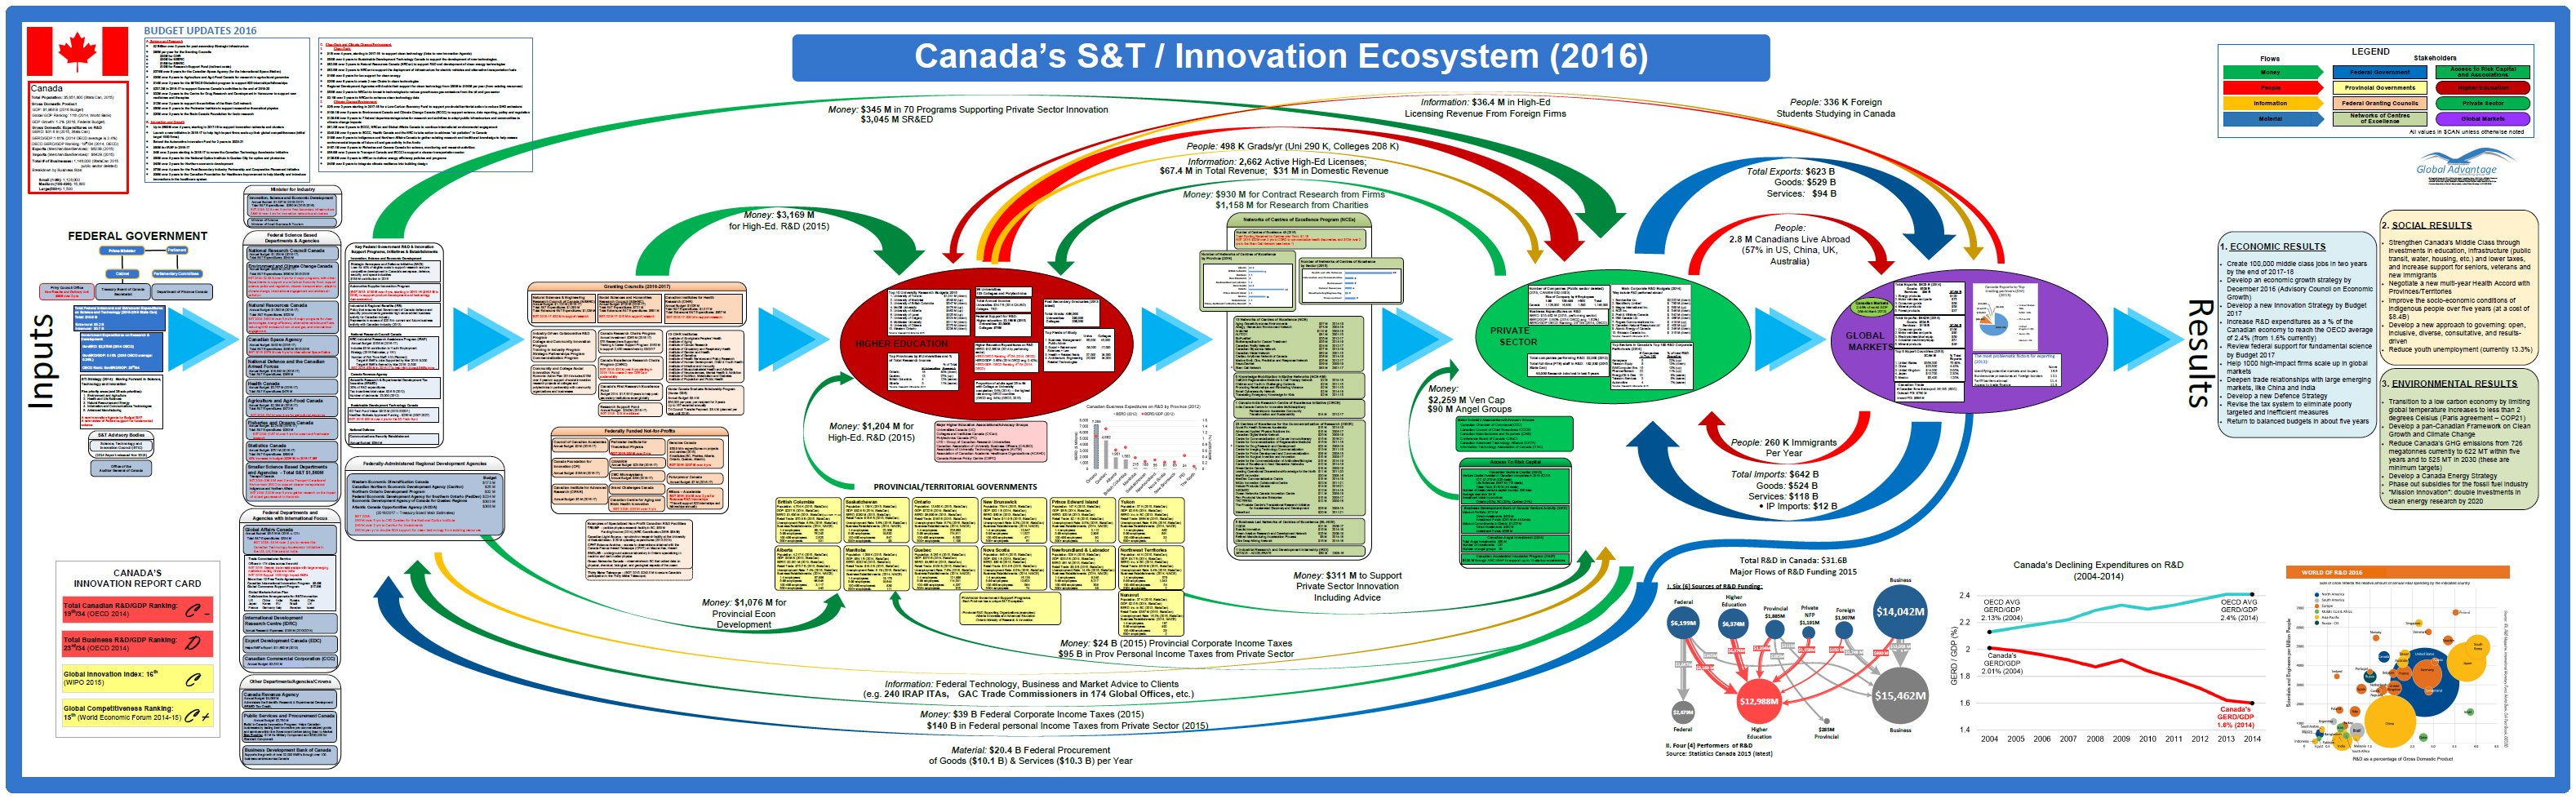 most important innovation to canada Innovation is important at all stages of development specifically, the creation and diffusion of technologies are important for economic growth and welfare across all economies different types of innovation play a role at various stages (eg in earlier stages, incremental innovation is often associated with the adoption of foreign technology.